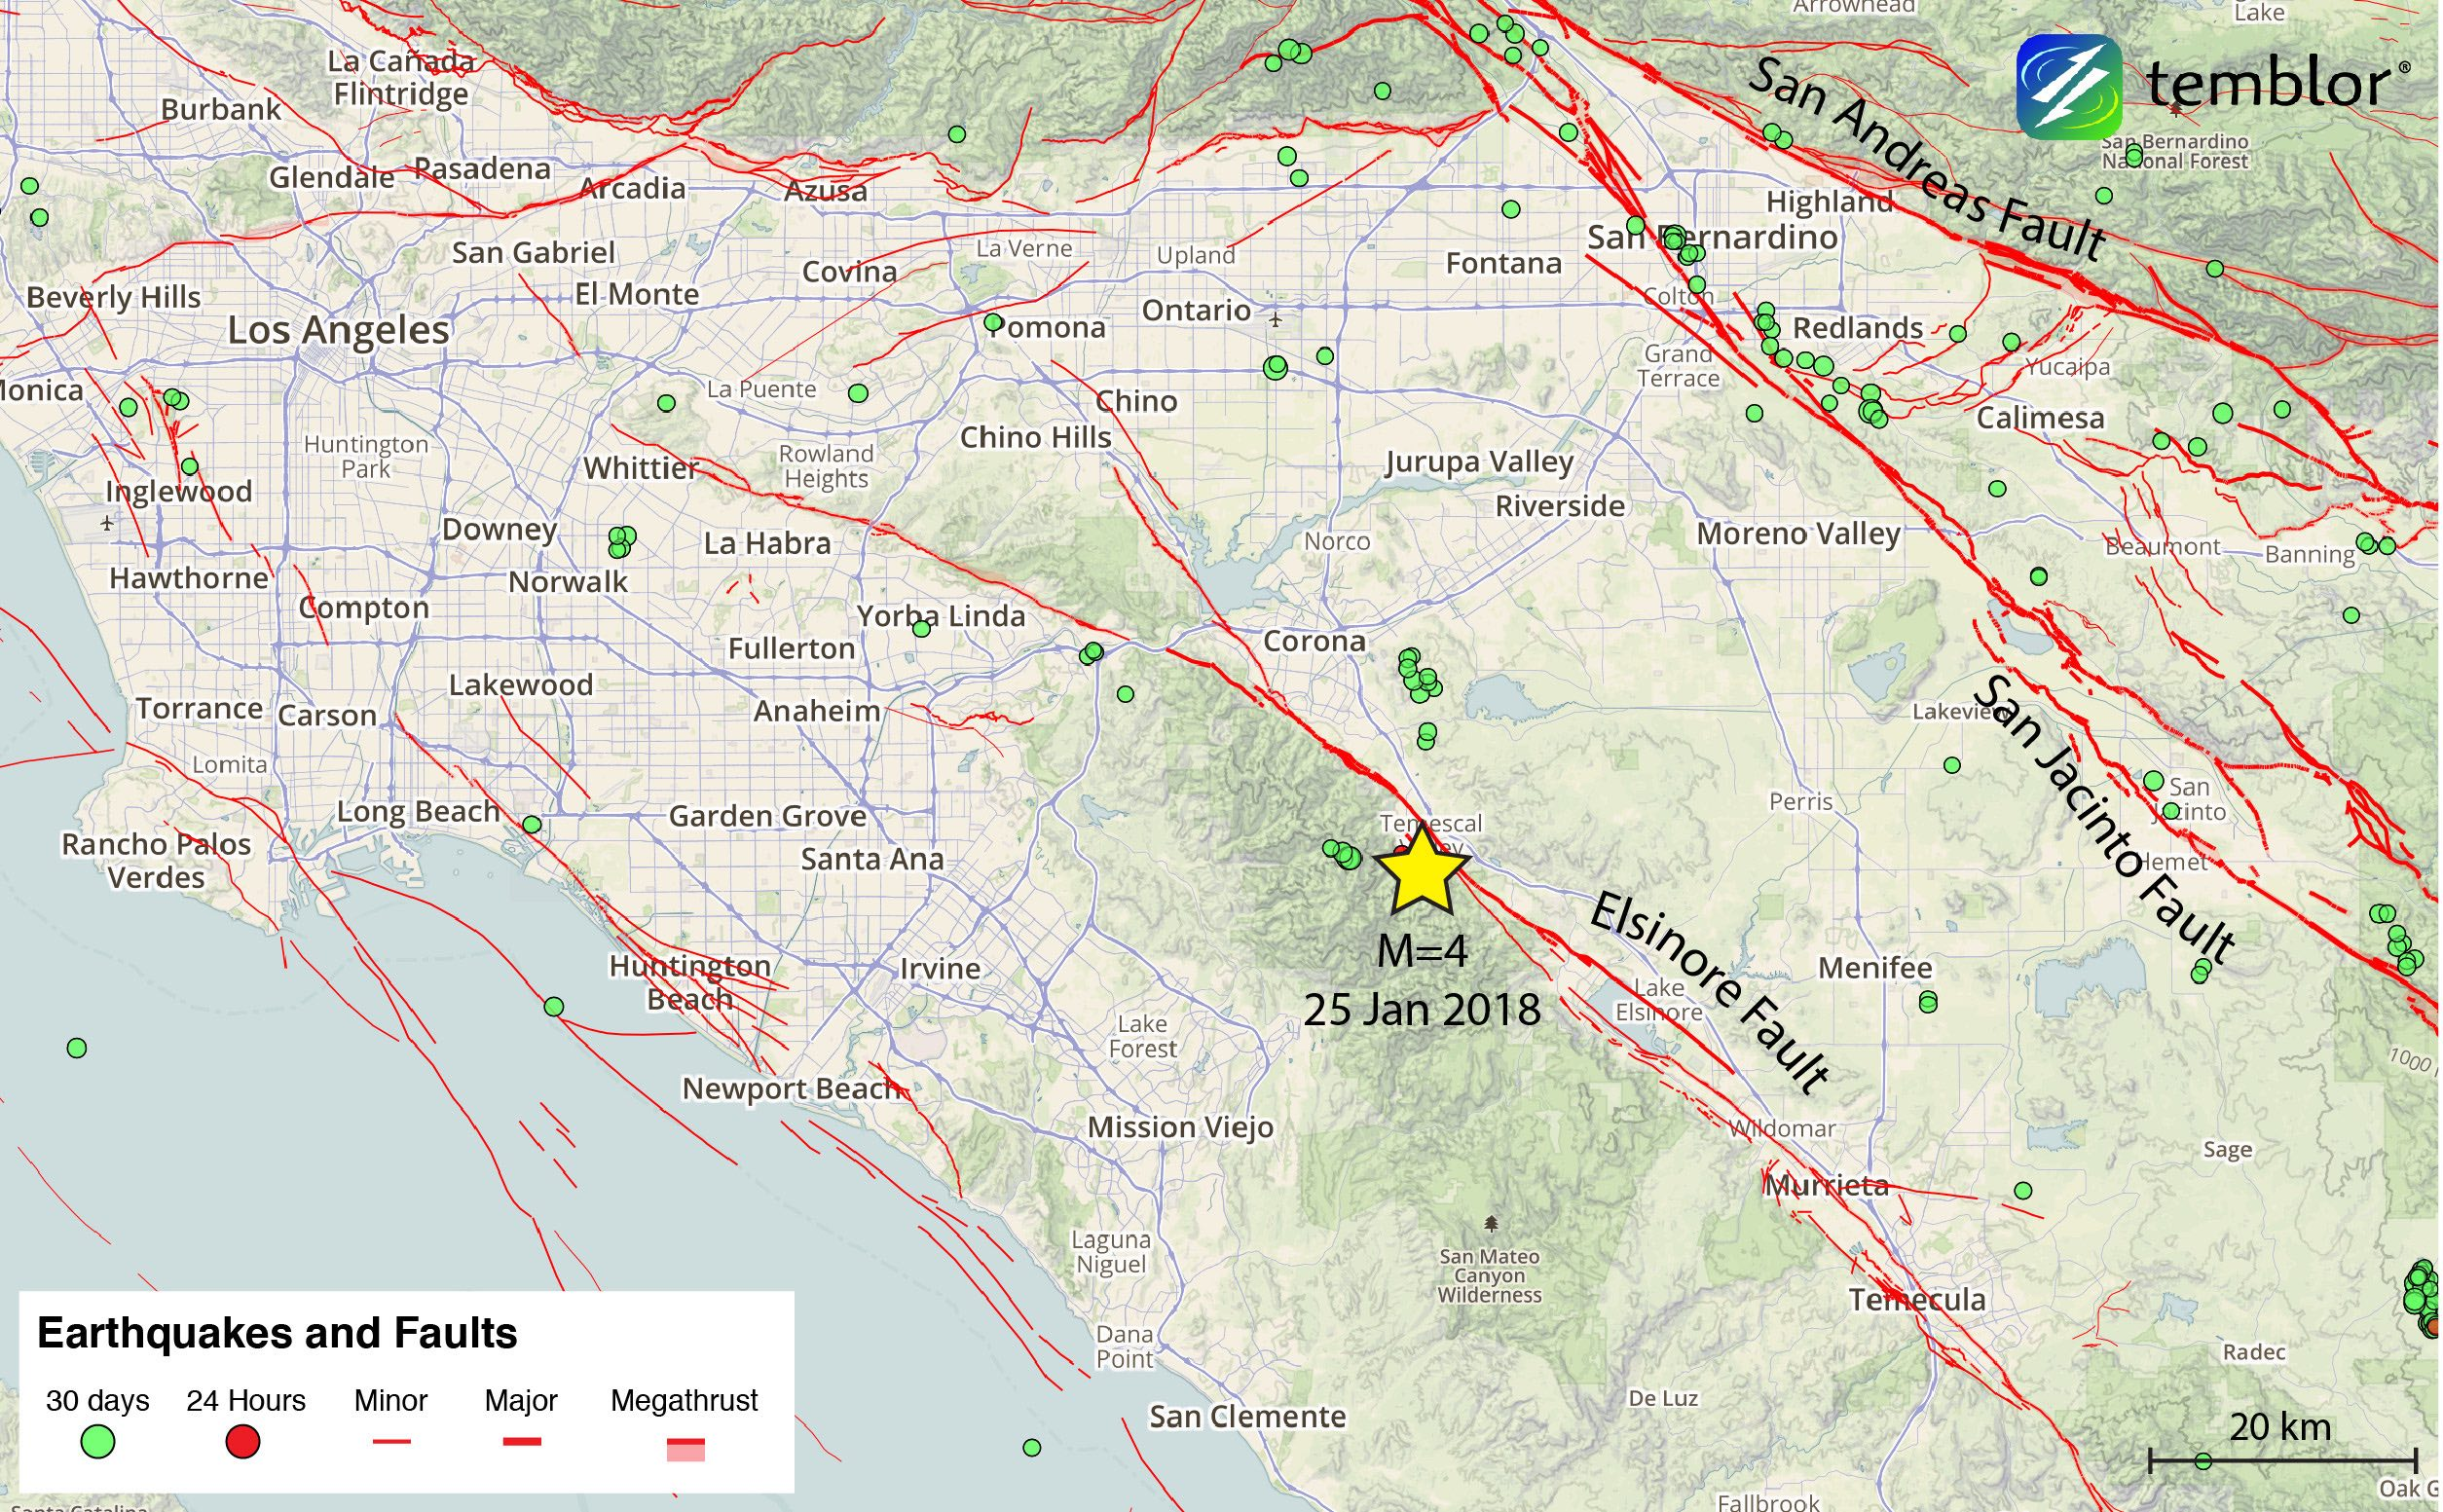 m=4 southern california earthquake highlights elsinore